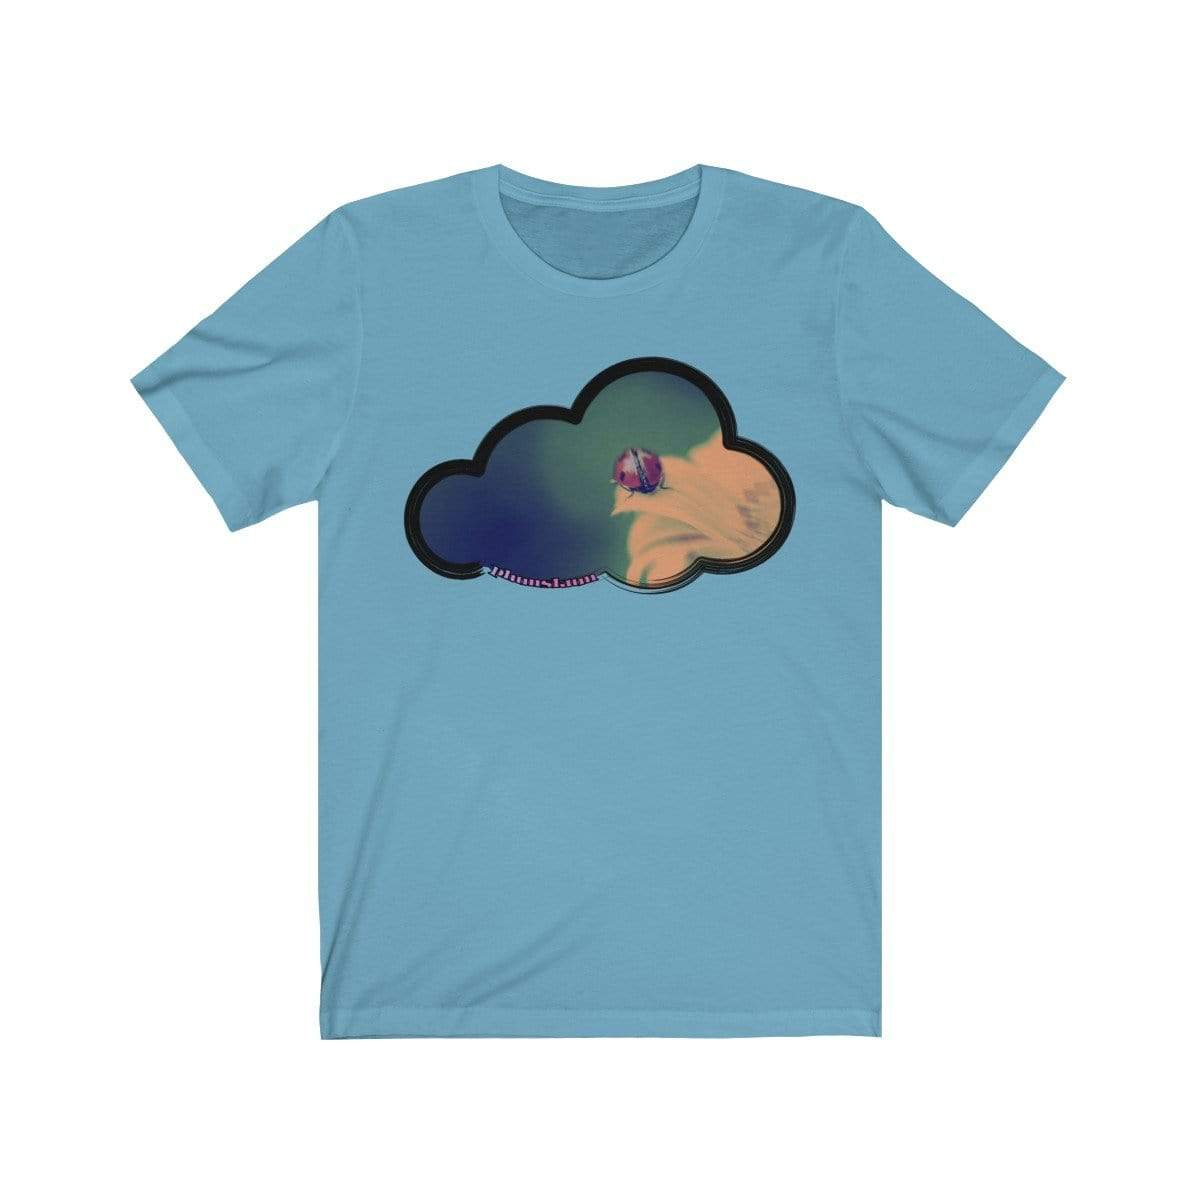 Printify T-Shirt Ocean Blue / L Ladybug Art Clouds Tee